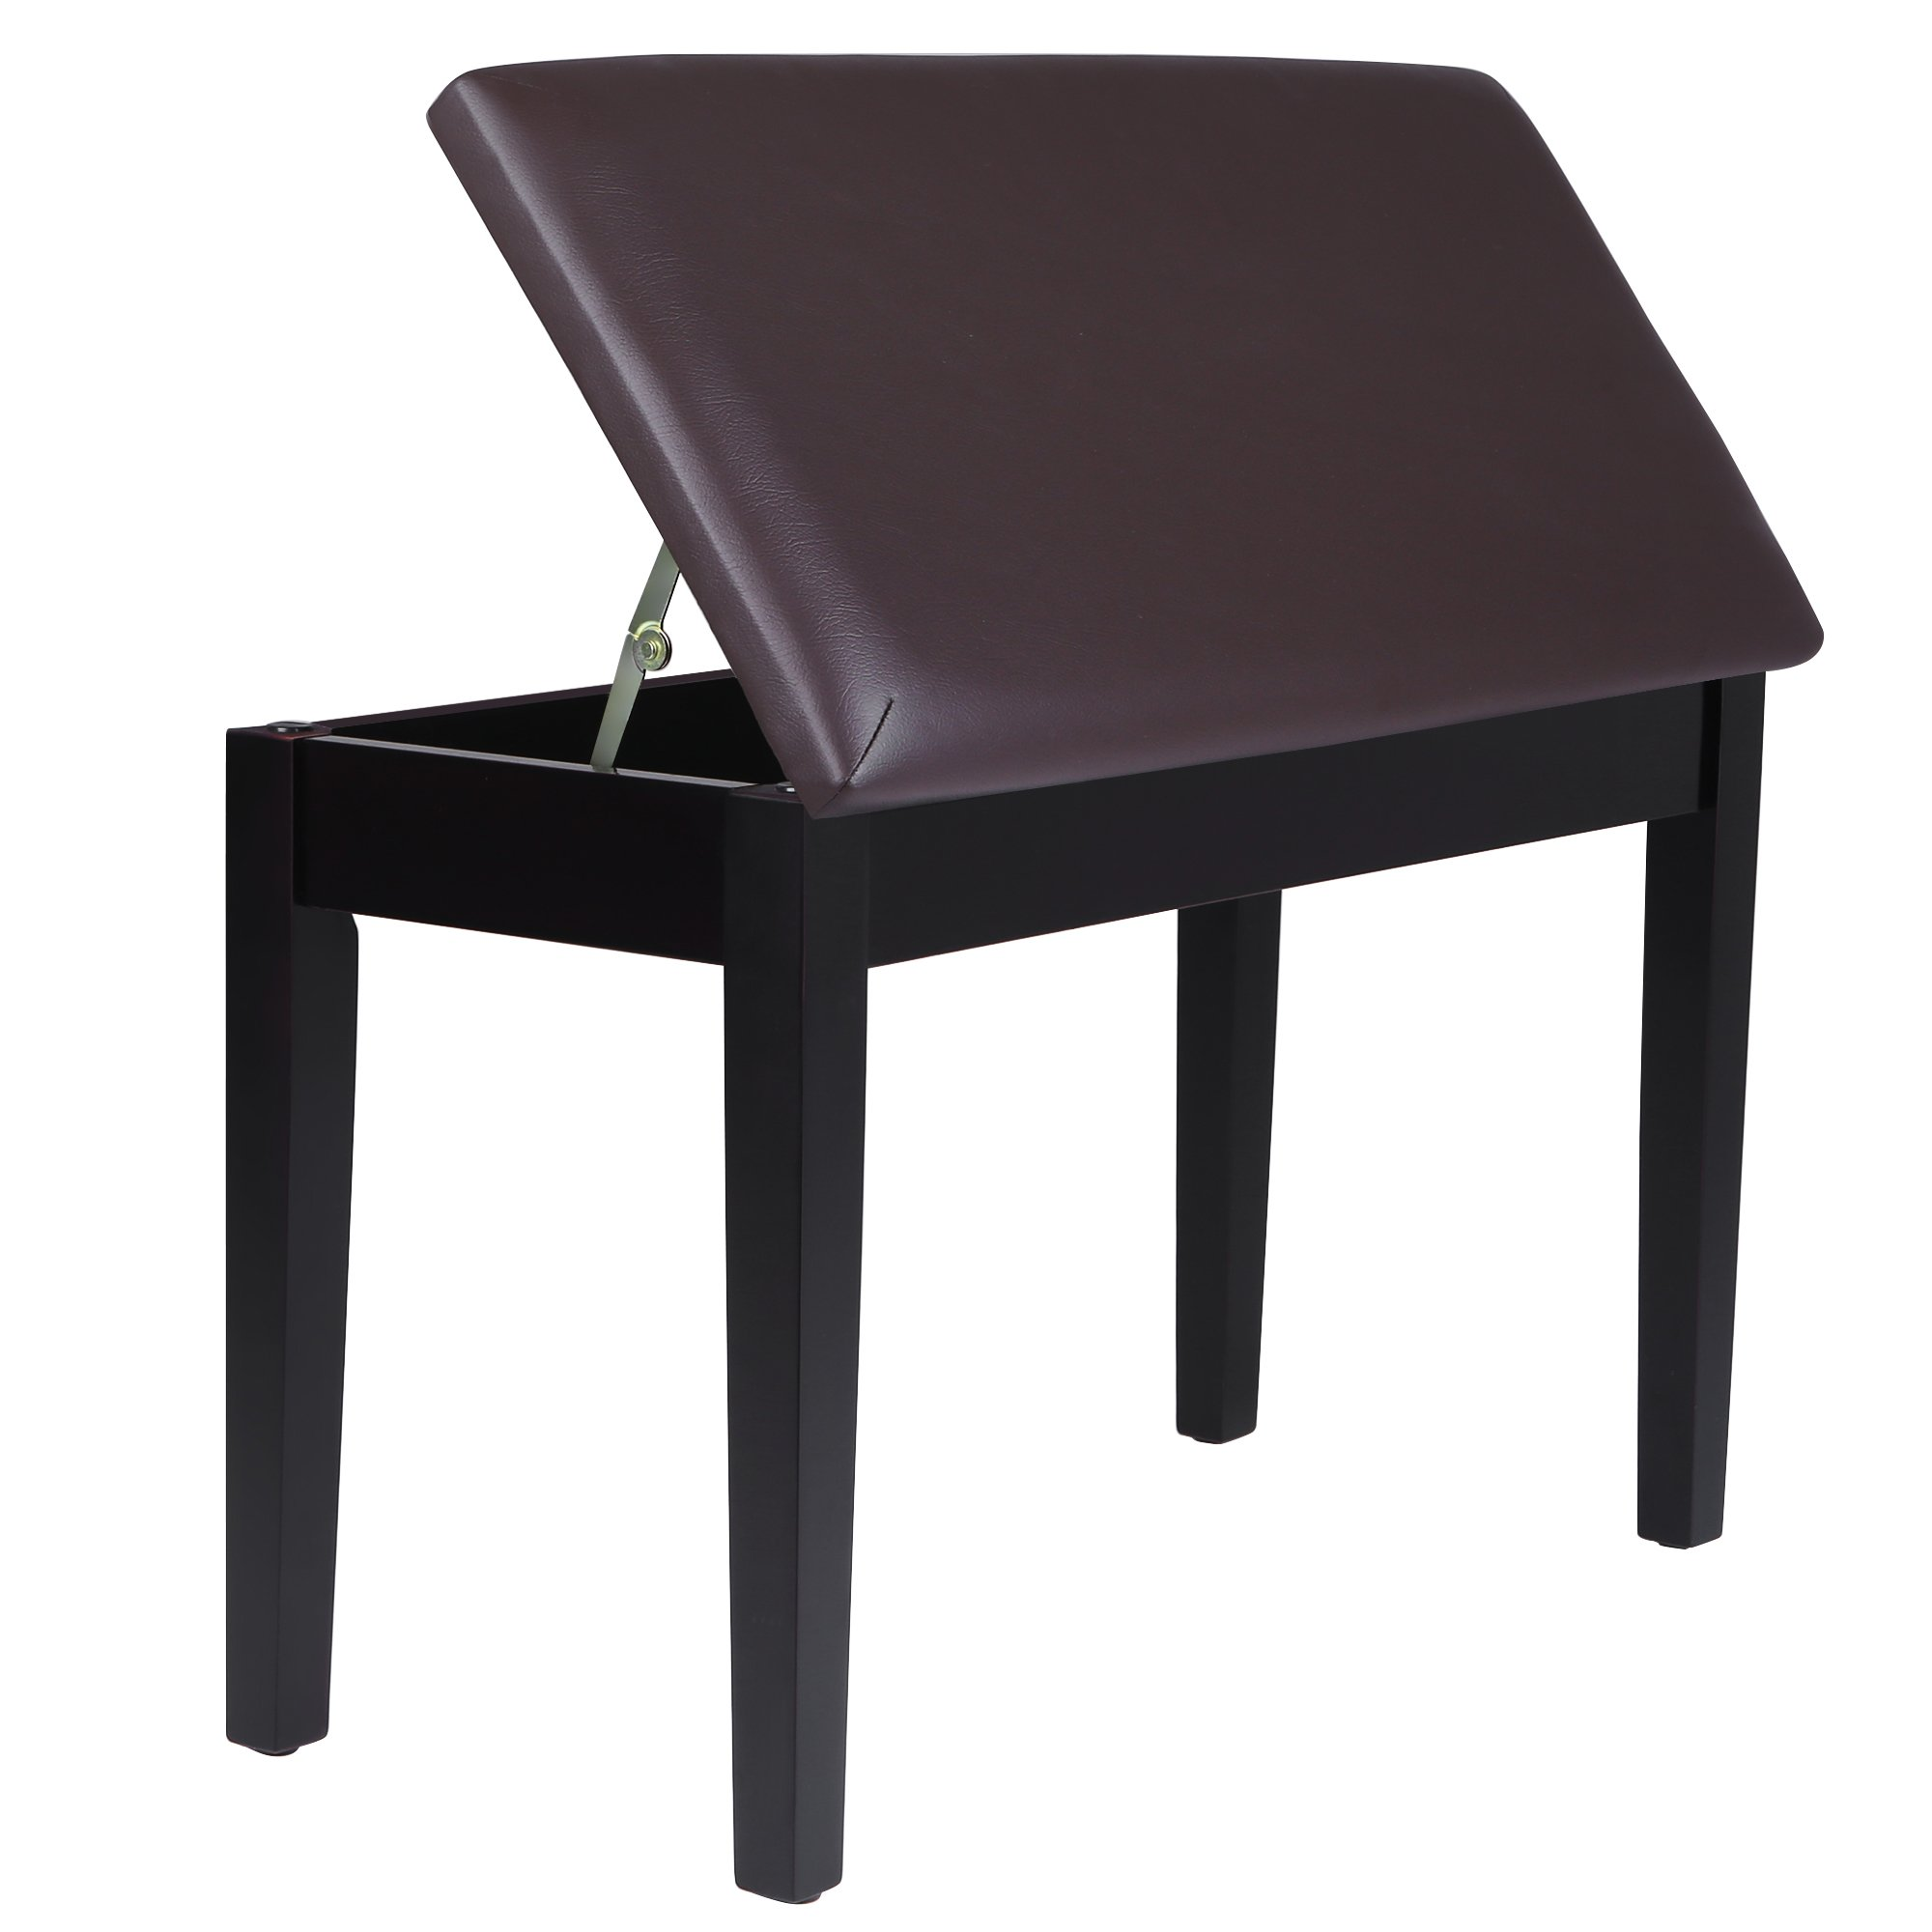 SONGMICS Wooden Duet Piano Bench with Padded Cushion and Music Storage Brown ULPB75Z